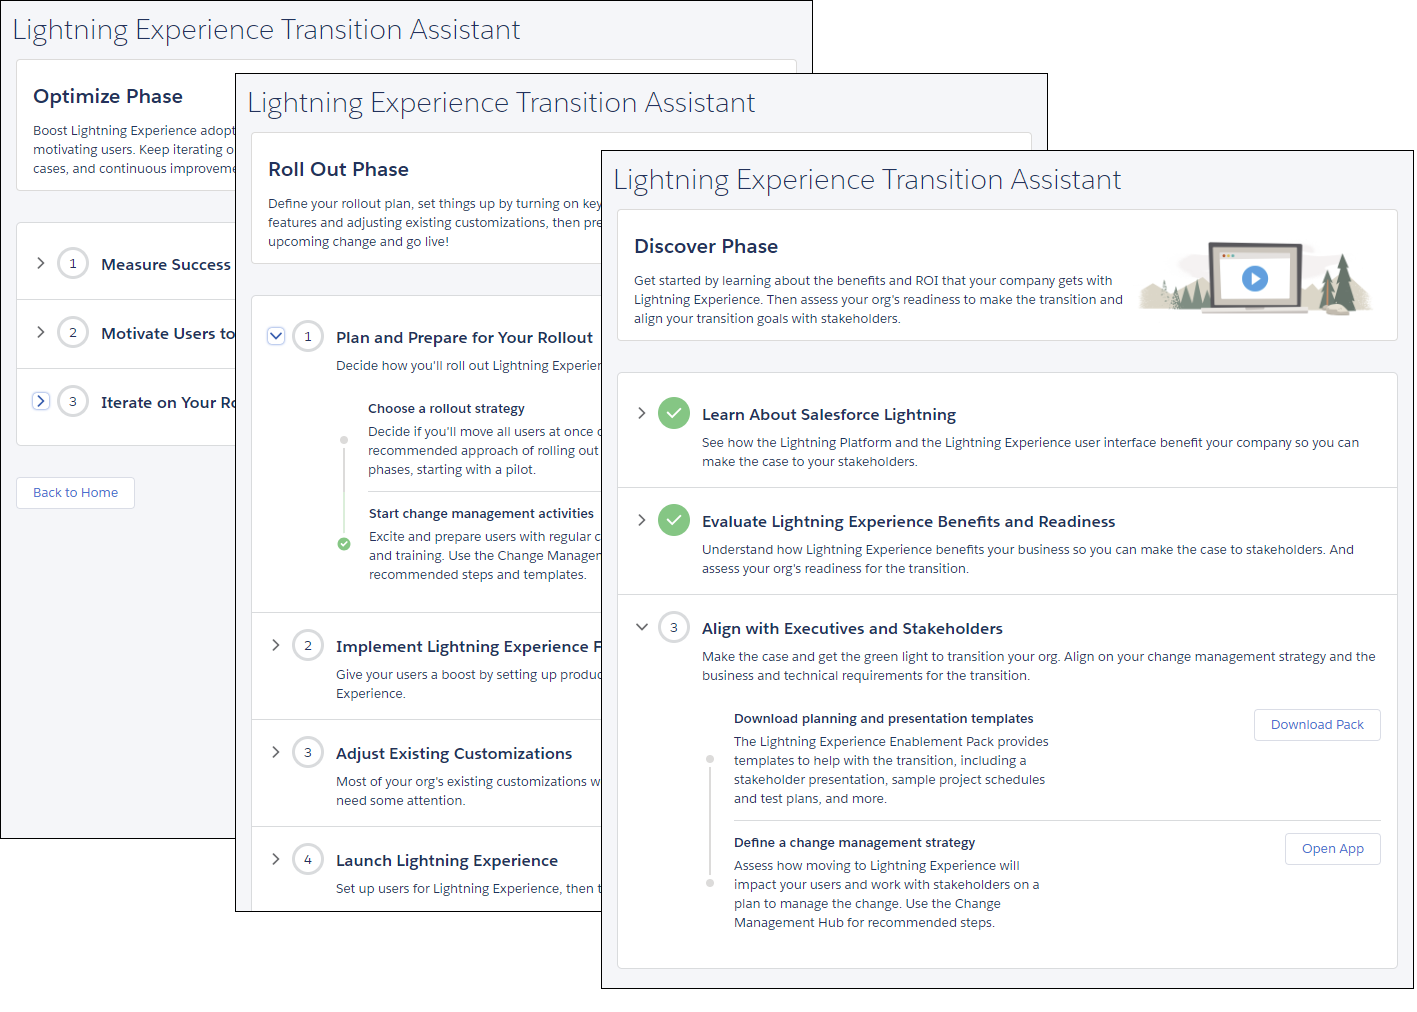 Phases and stages in the Lightning Experience Transition Assistant